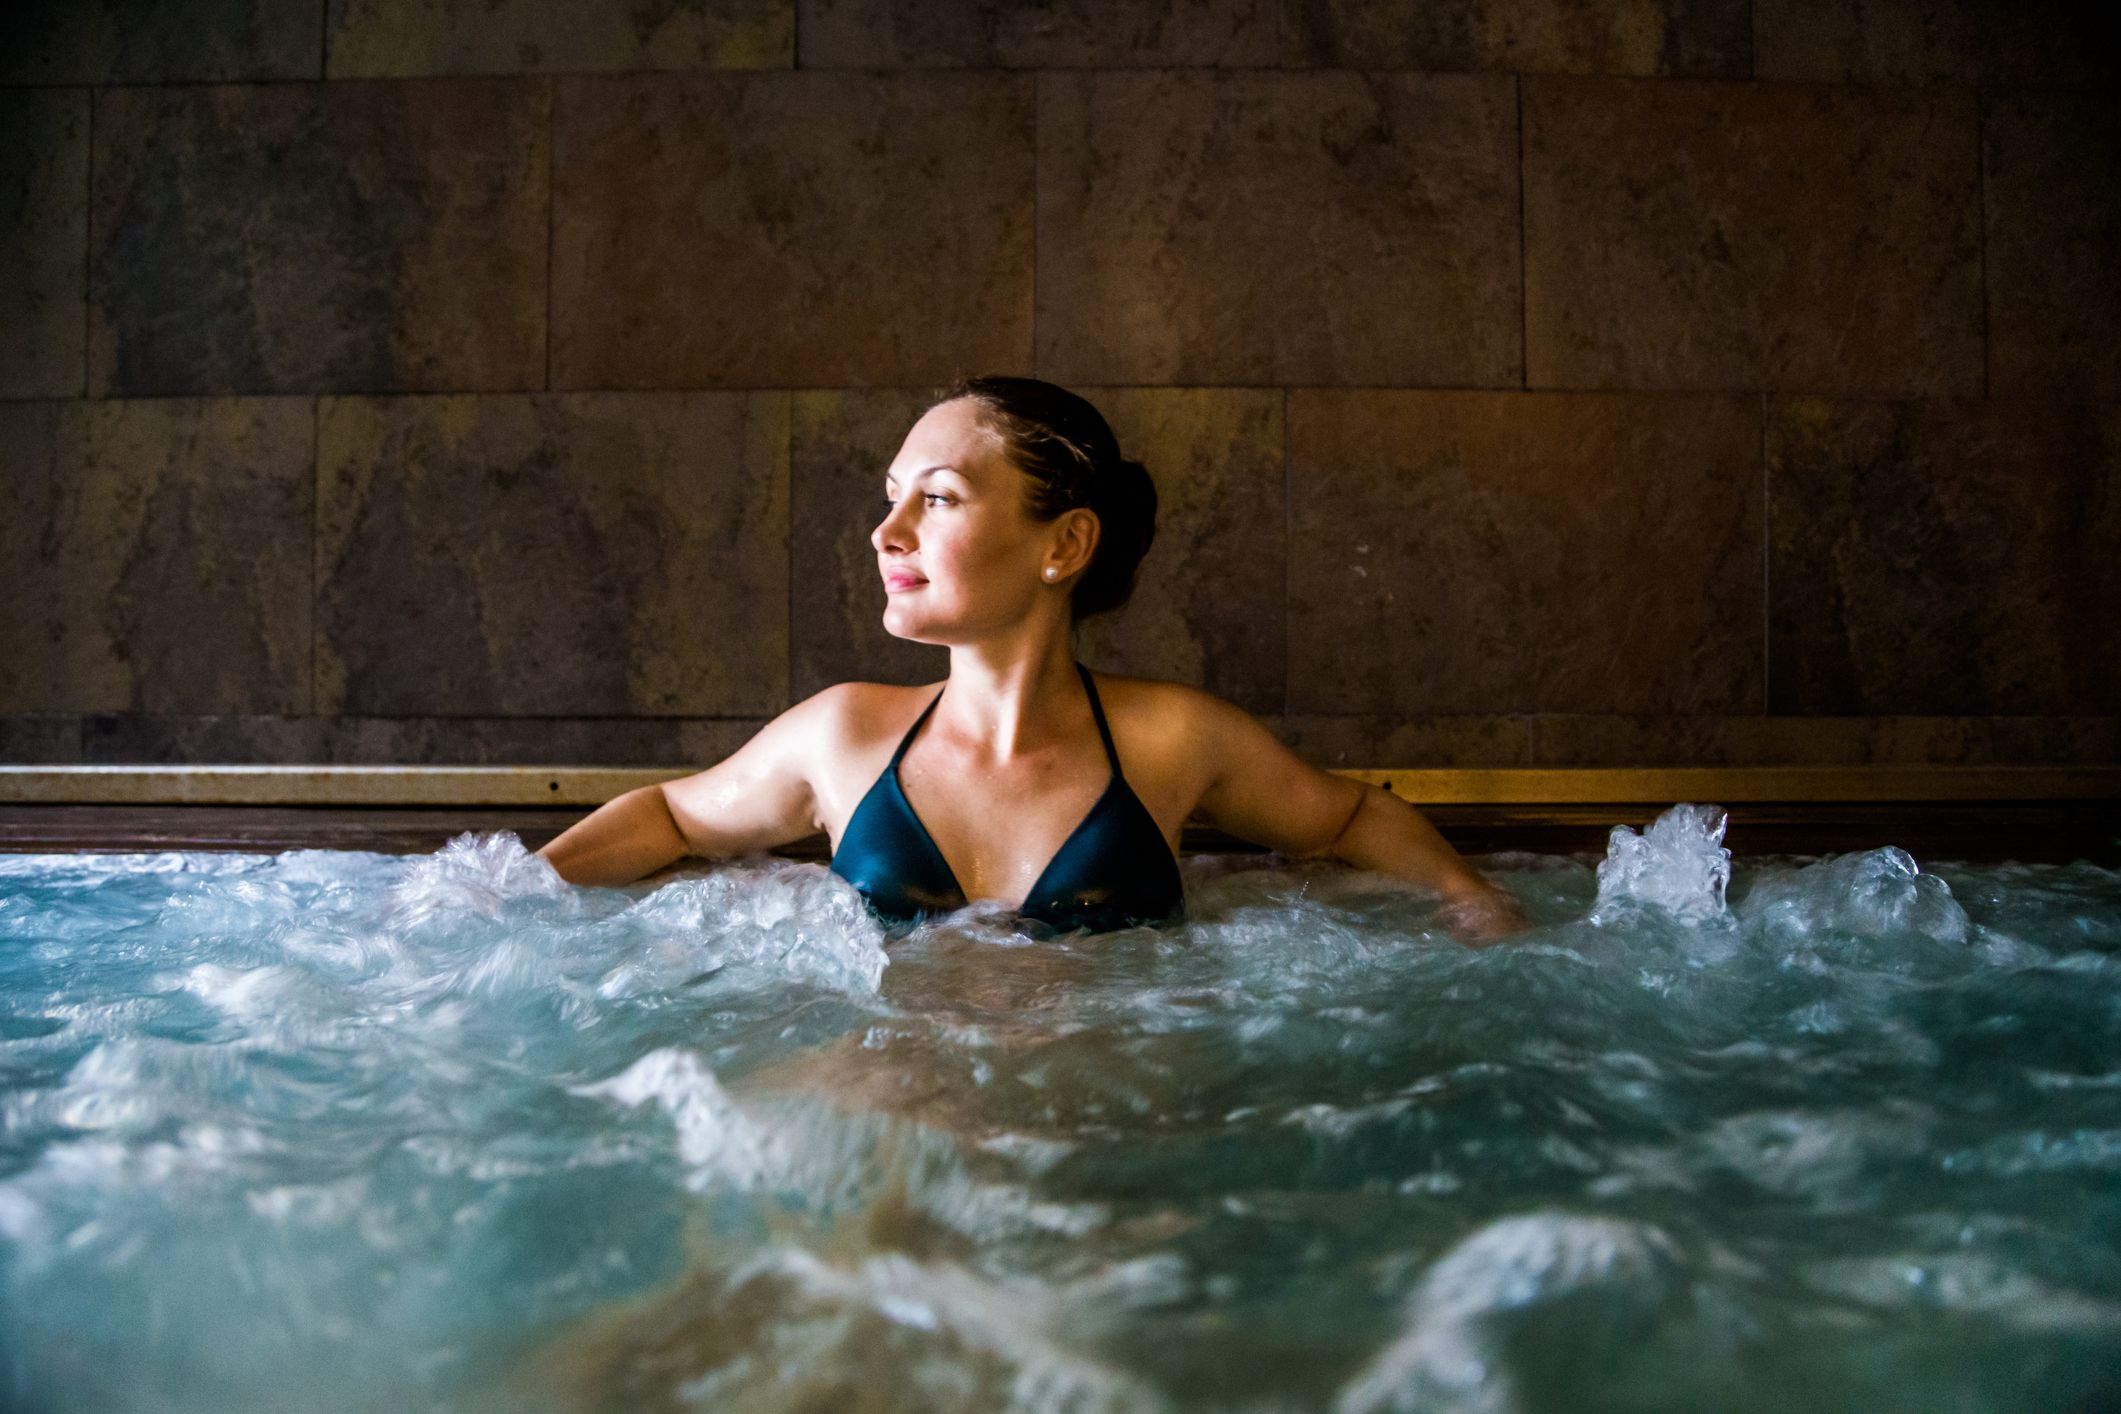 Spa gifts 2019: The best ideas for treating your loved one with a spa break